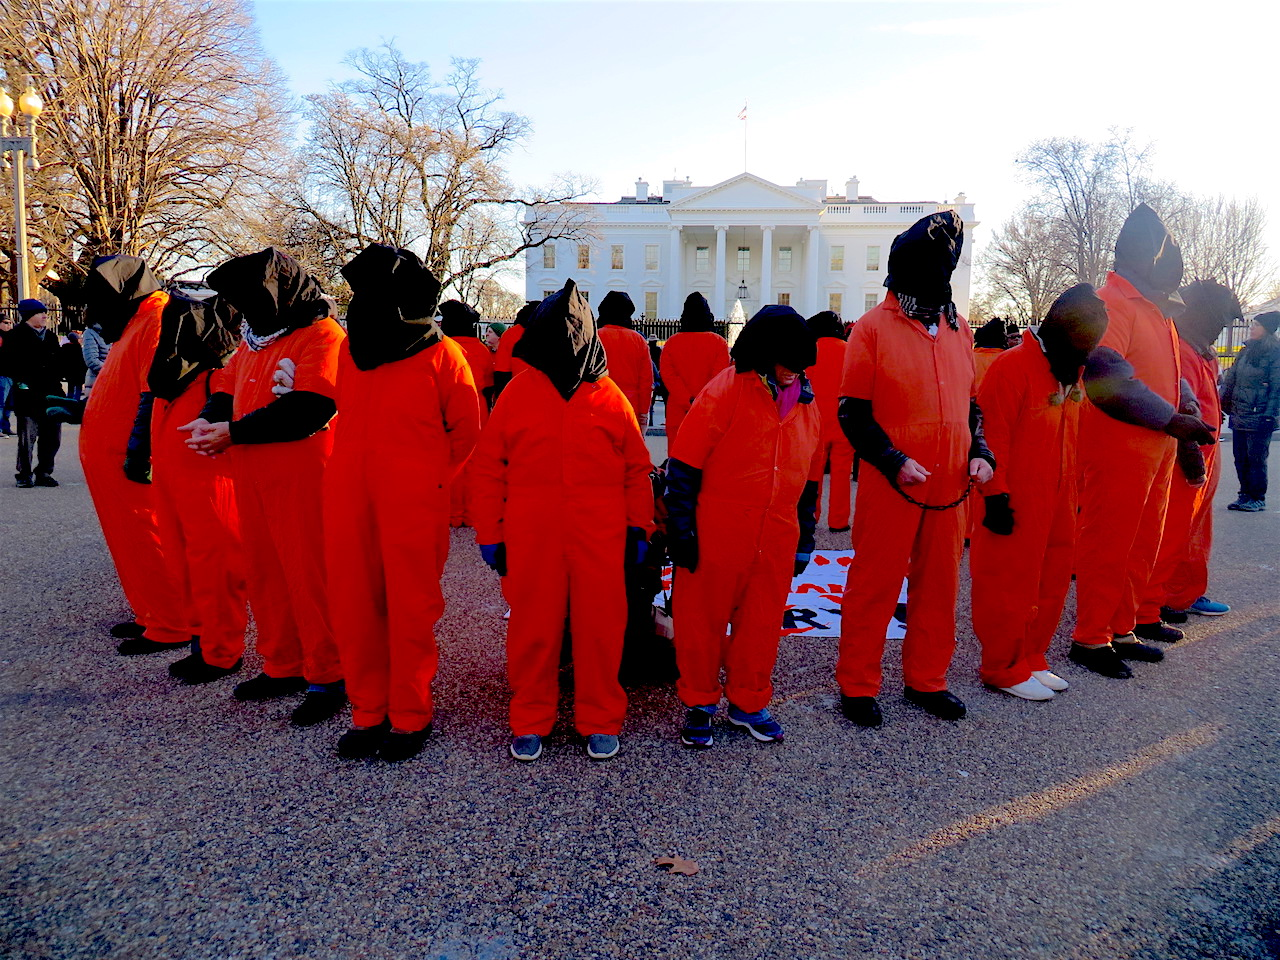 Witness Against Torture campaigners form a circle outside the White House towards the end of the annual vigil calling for the closure of Guantanamo, on January 11, 2019 (Photo: Andy Worthington).